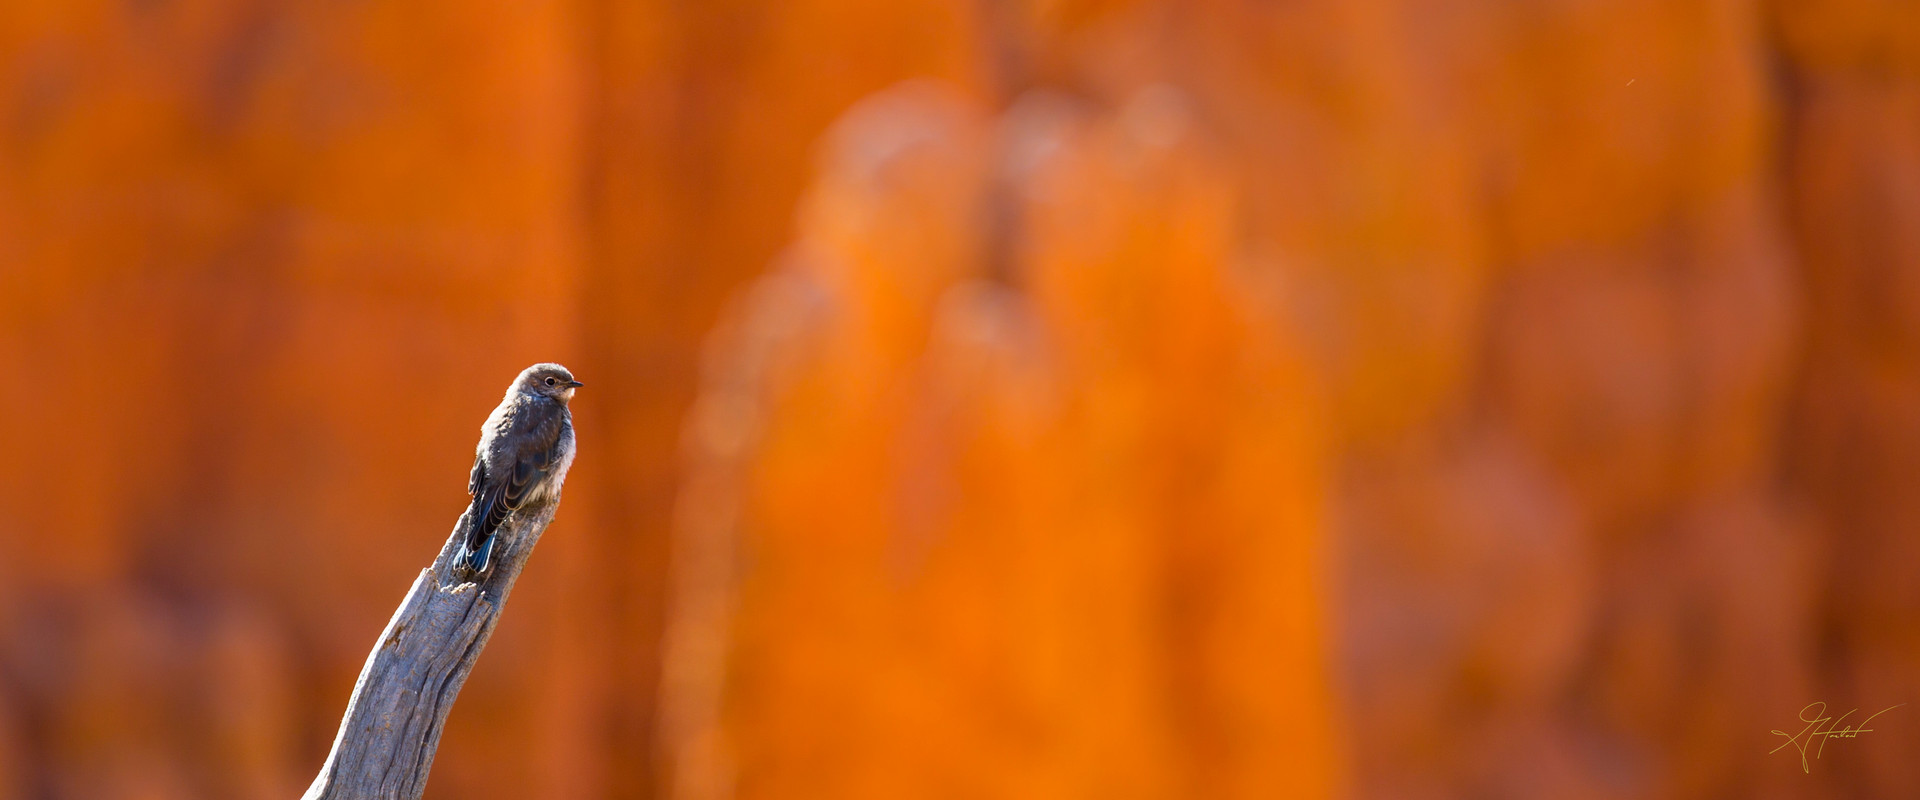 Greg Harlow Media Photography,  Bryce Canyon Cliff Swallow